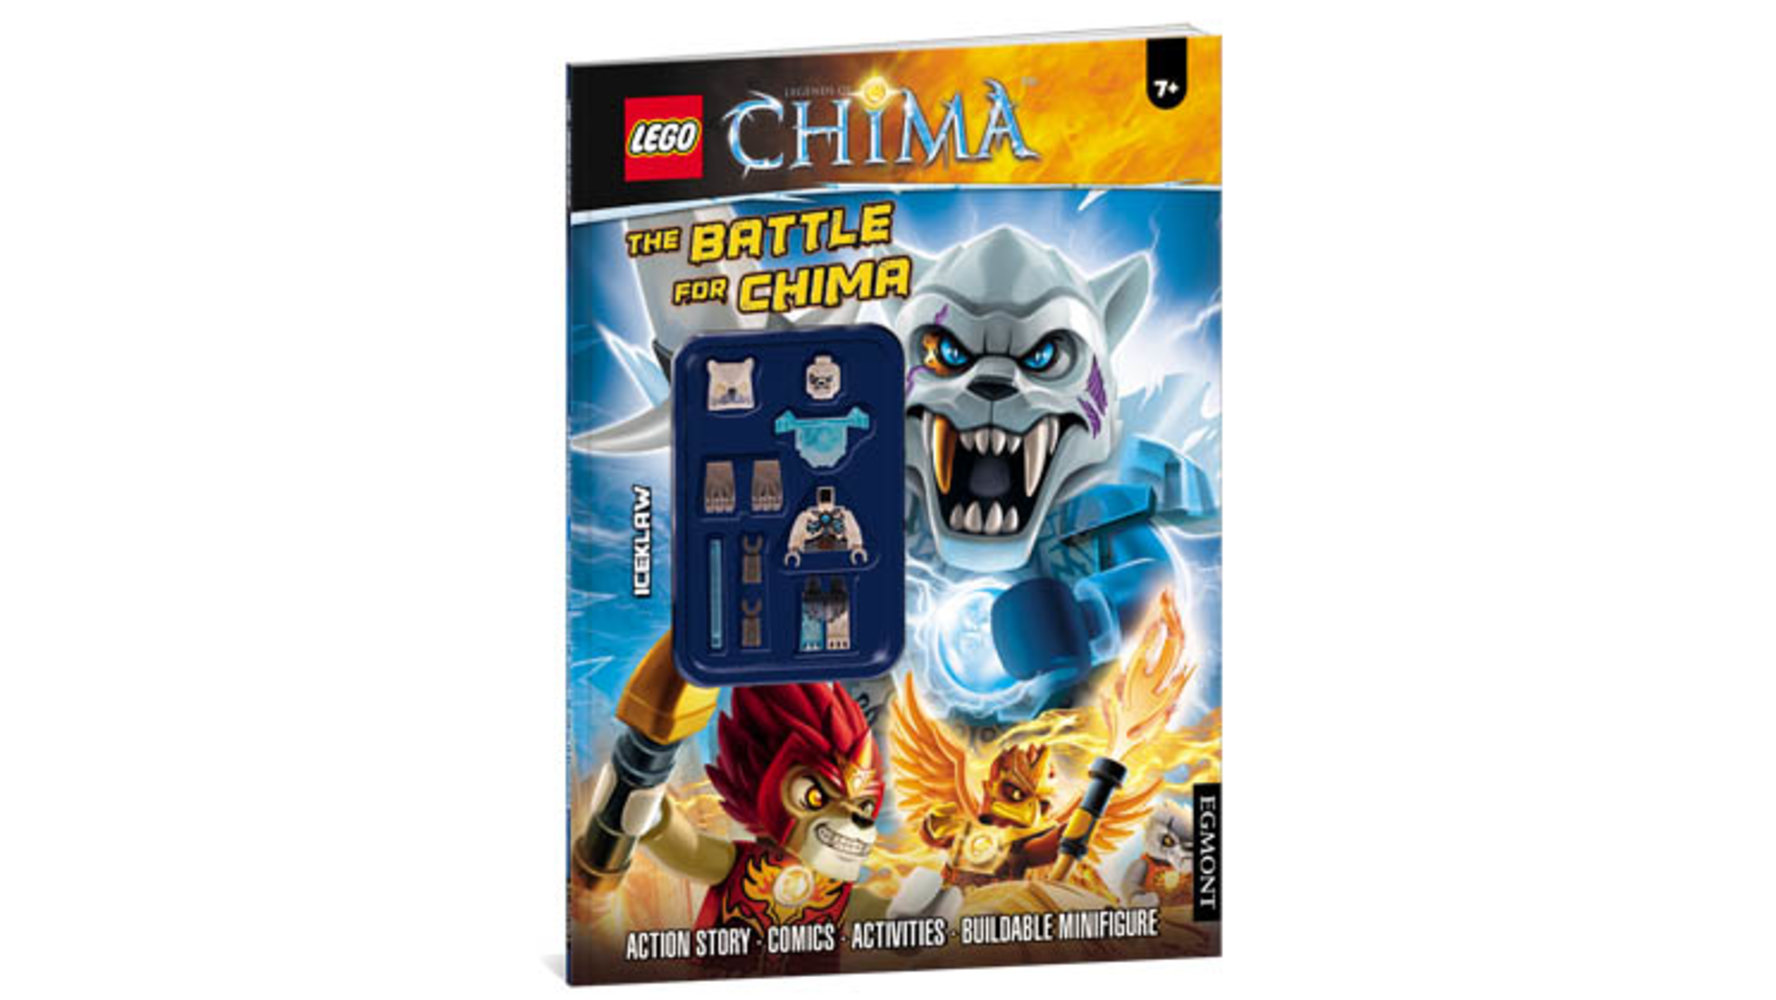 Legends of Chima: The Battle for Chima